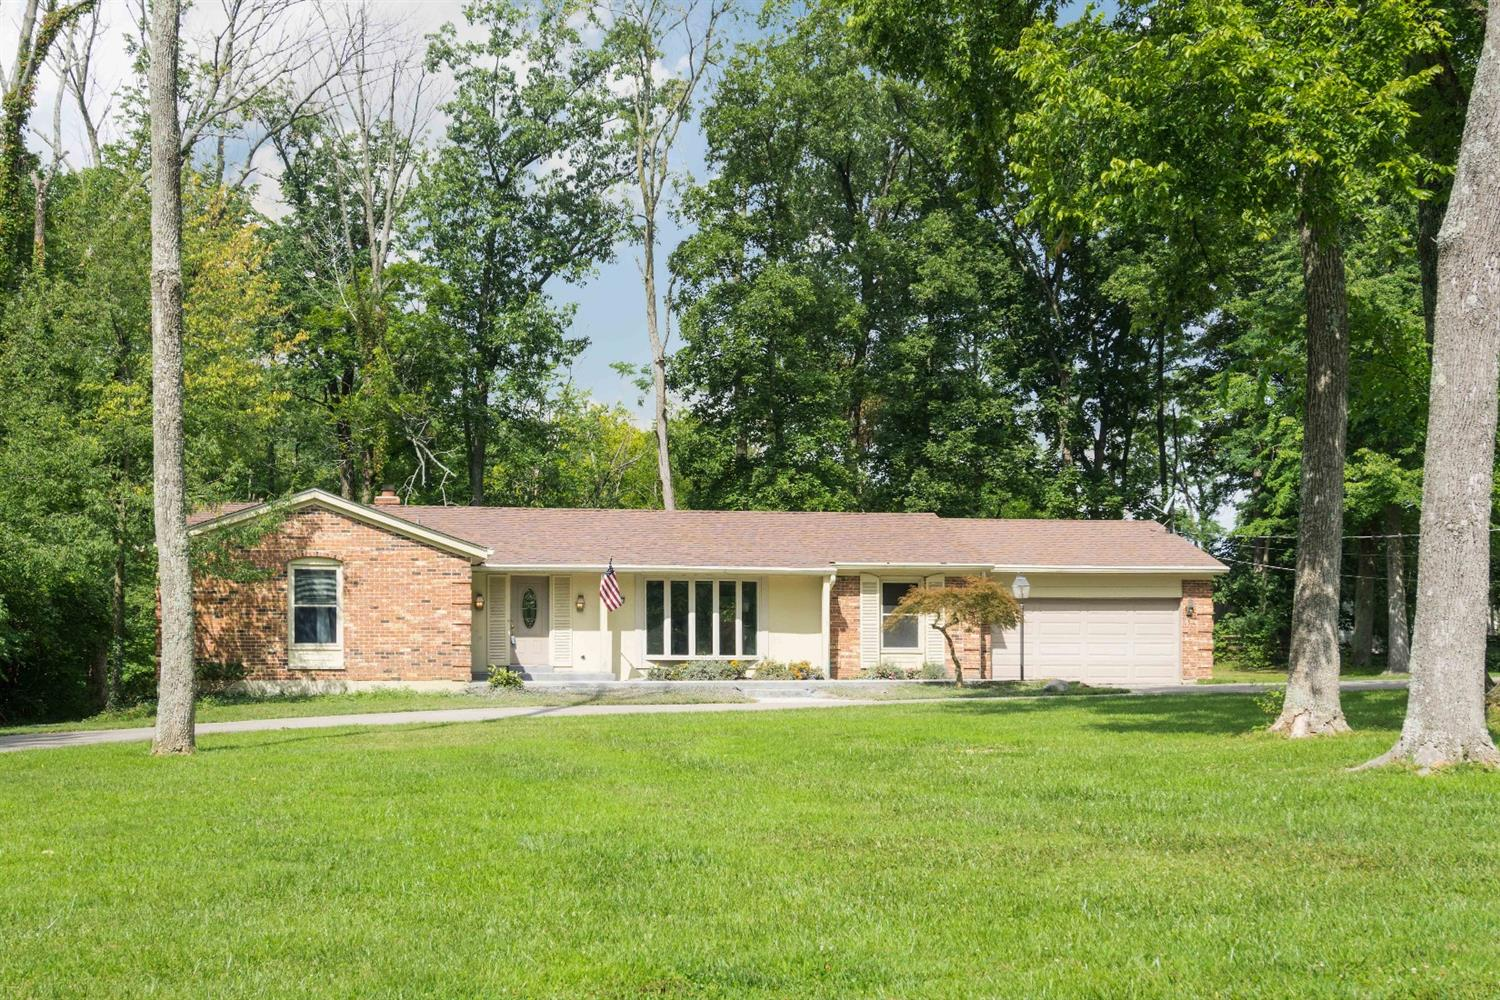 11351 Gideon Ln Sycamore Twp., OH